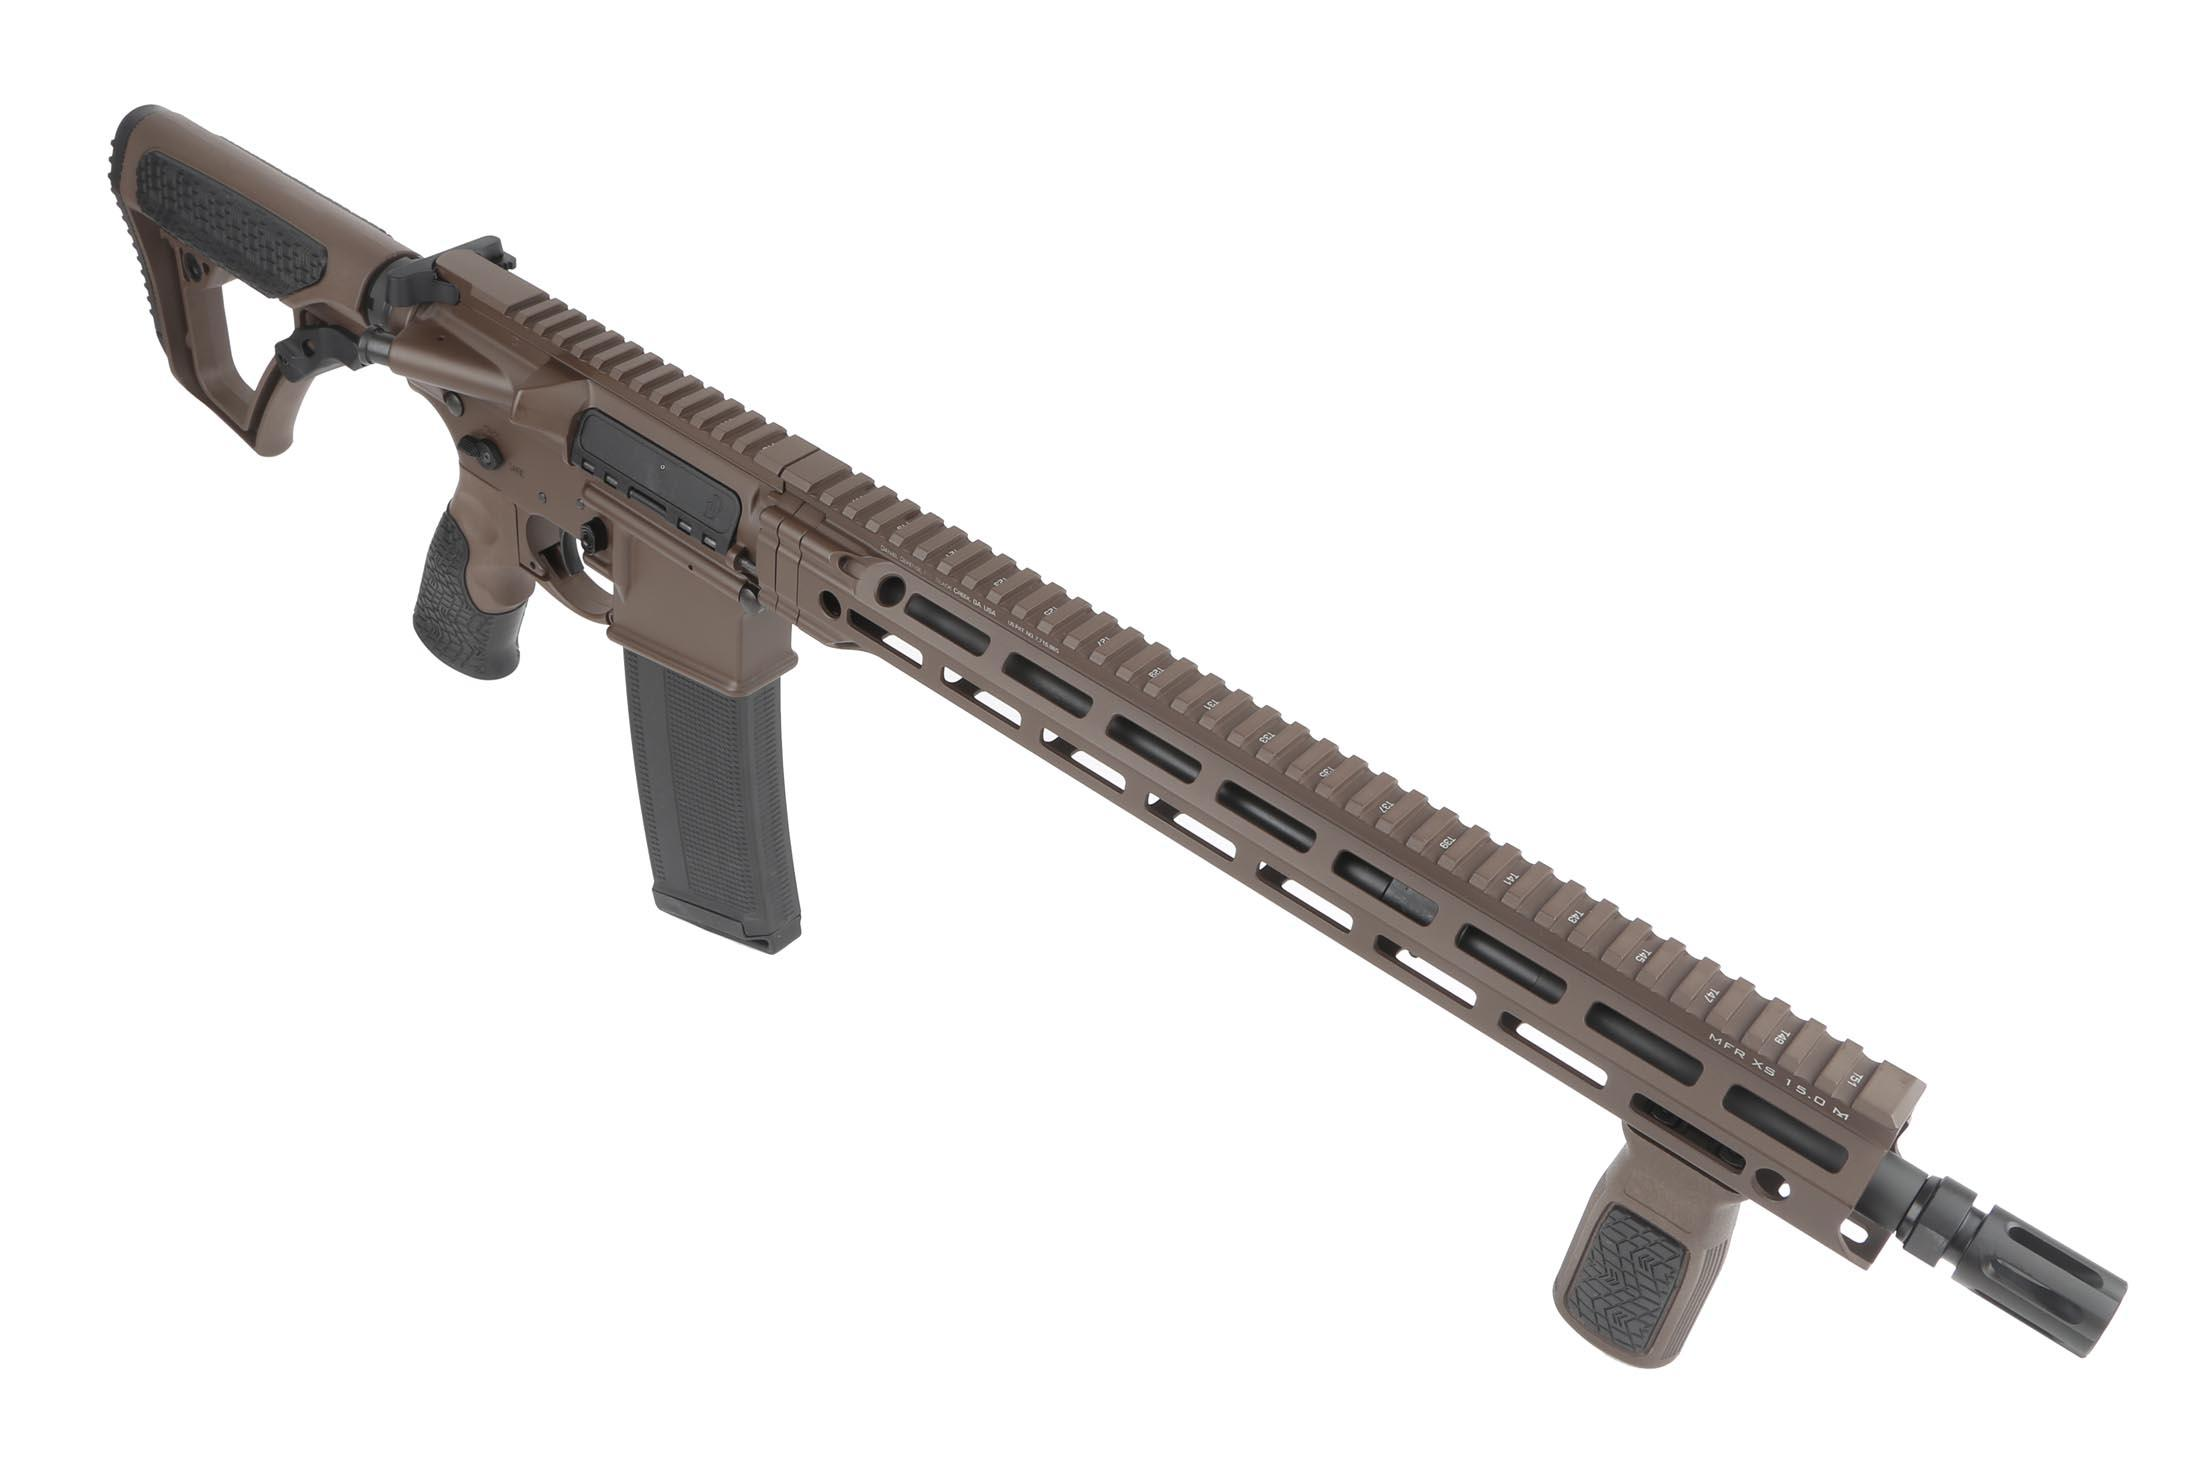 The DDM4v7 Daniel Defense rifle with Mil-Spec puls coating features the MFR XS M-LOK handguard